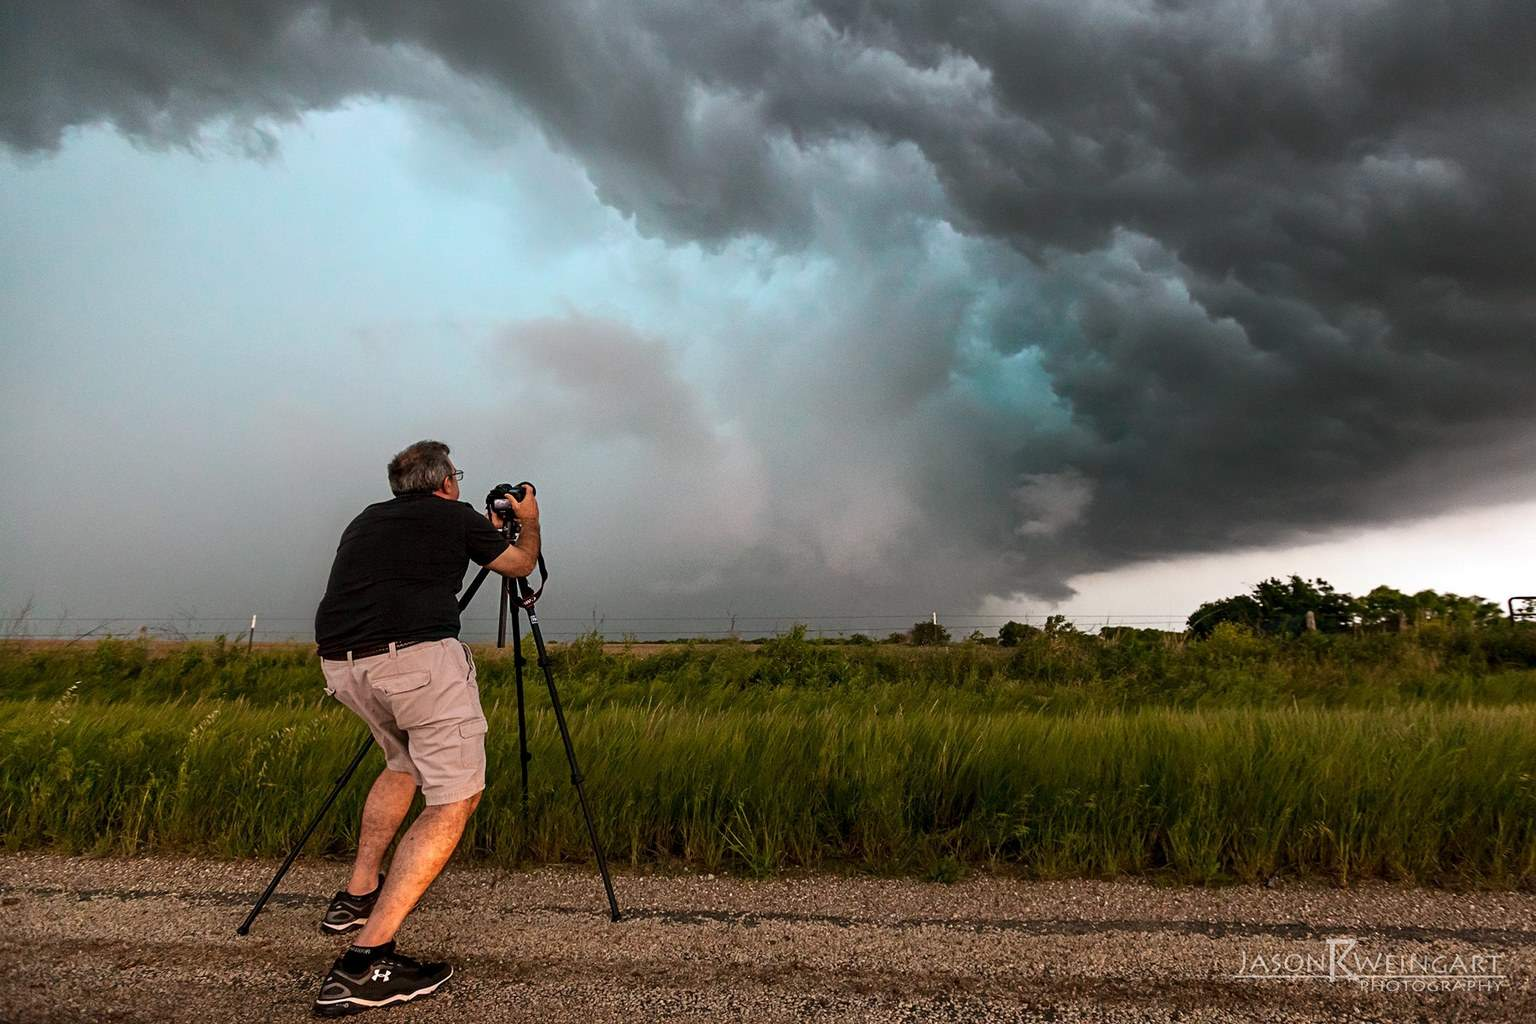 Sometimes I find it interesting to step back and photograph the chasers that are documenting the storm. I took this image of Gary Schmitt photographing a mean hail core in Throckmorton, Texas on Friday.